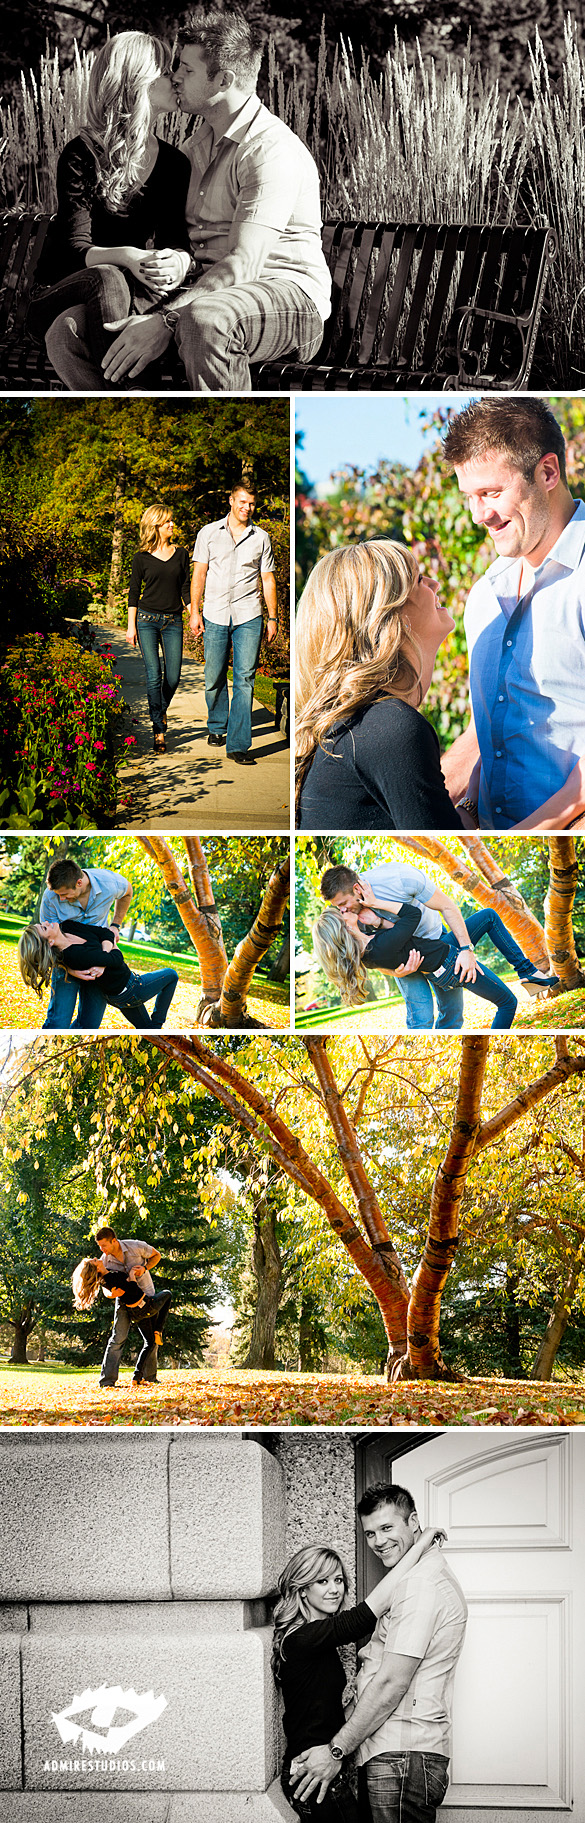 edmonton destination wedding photographer